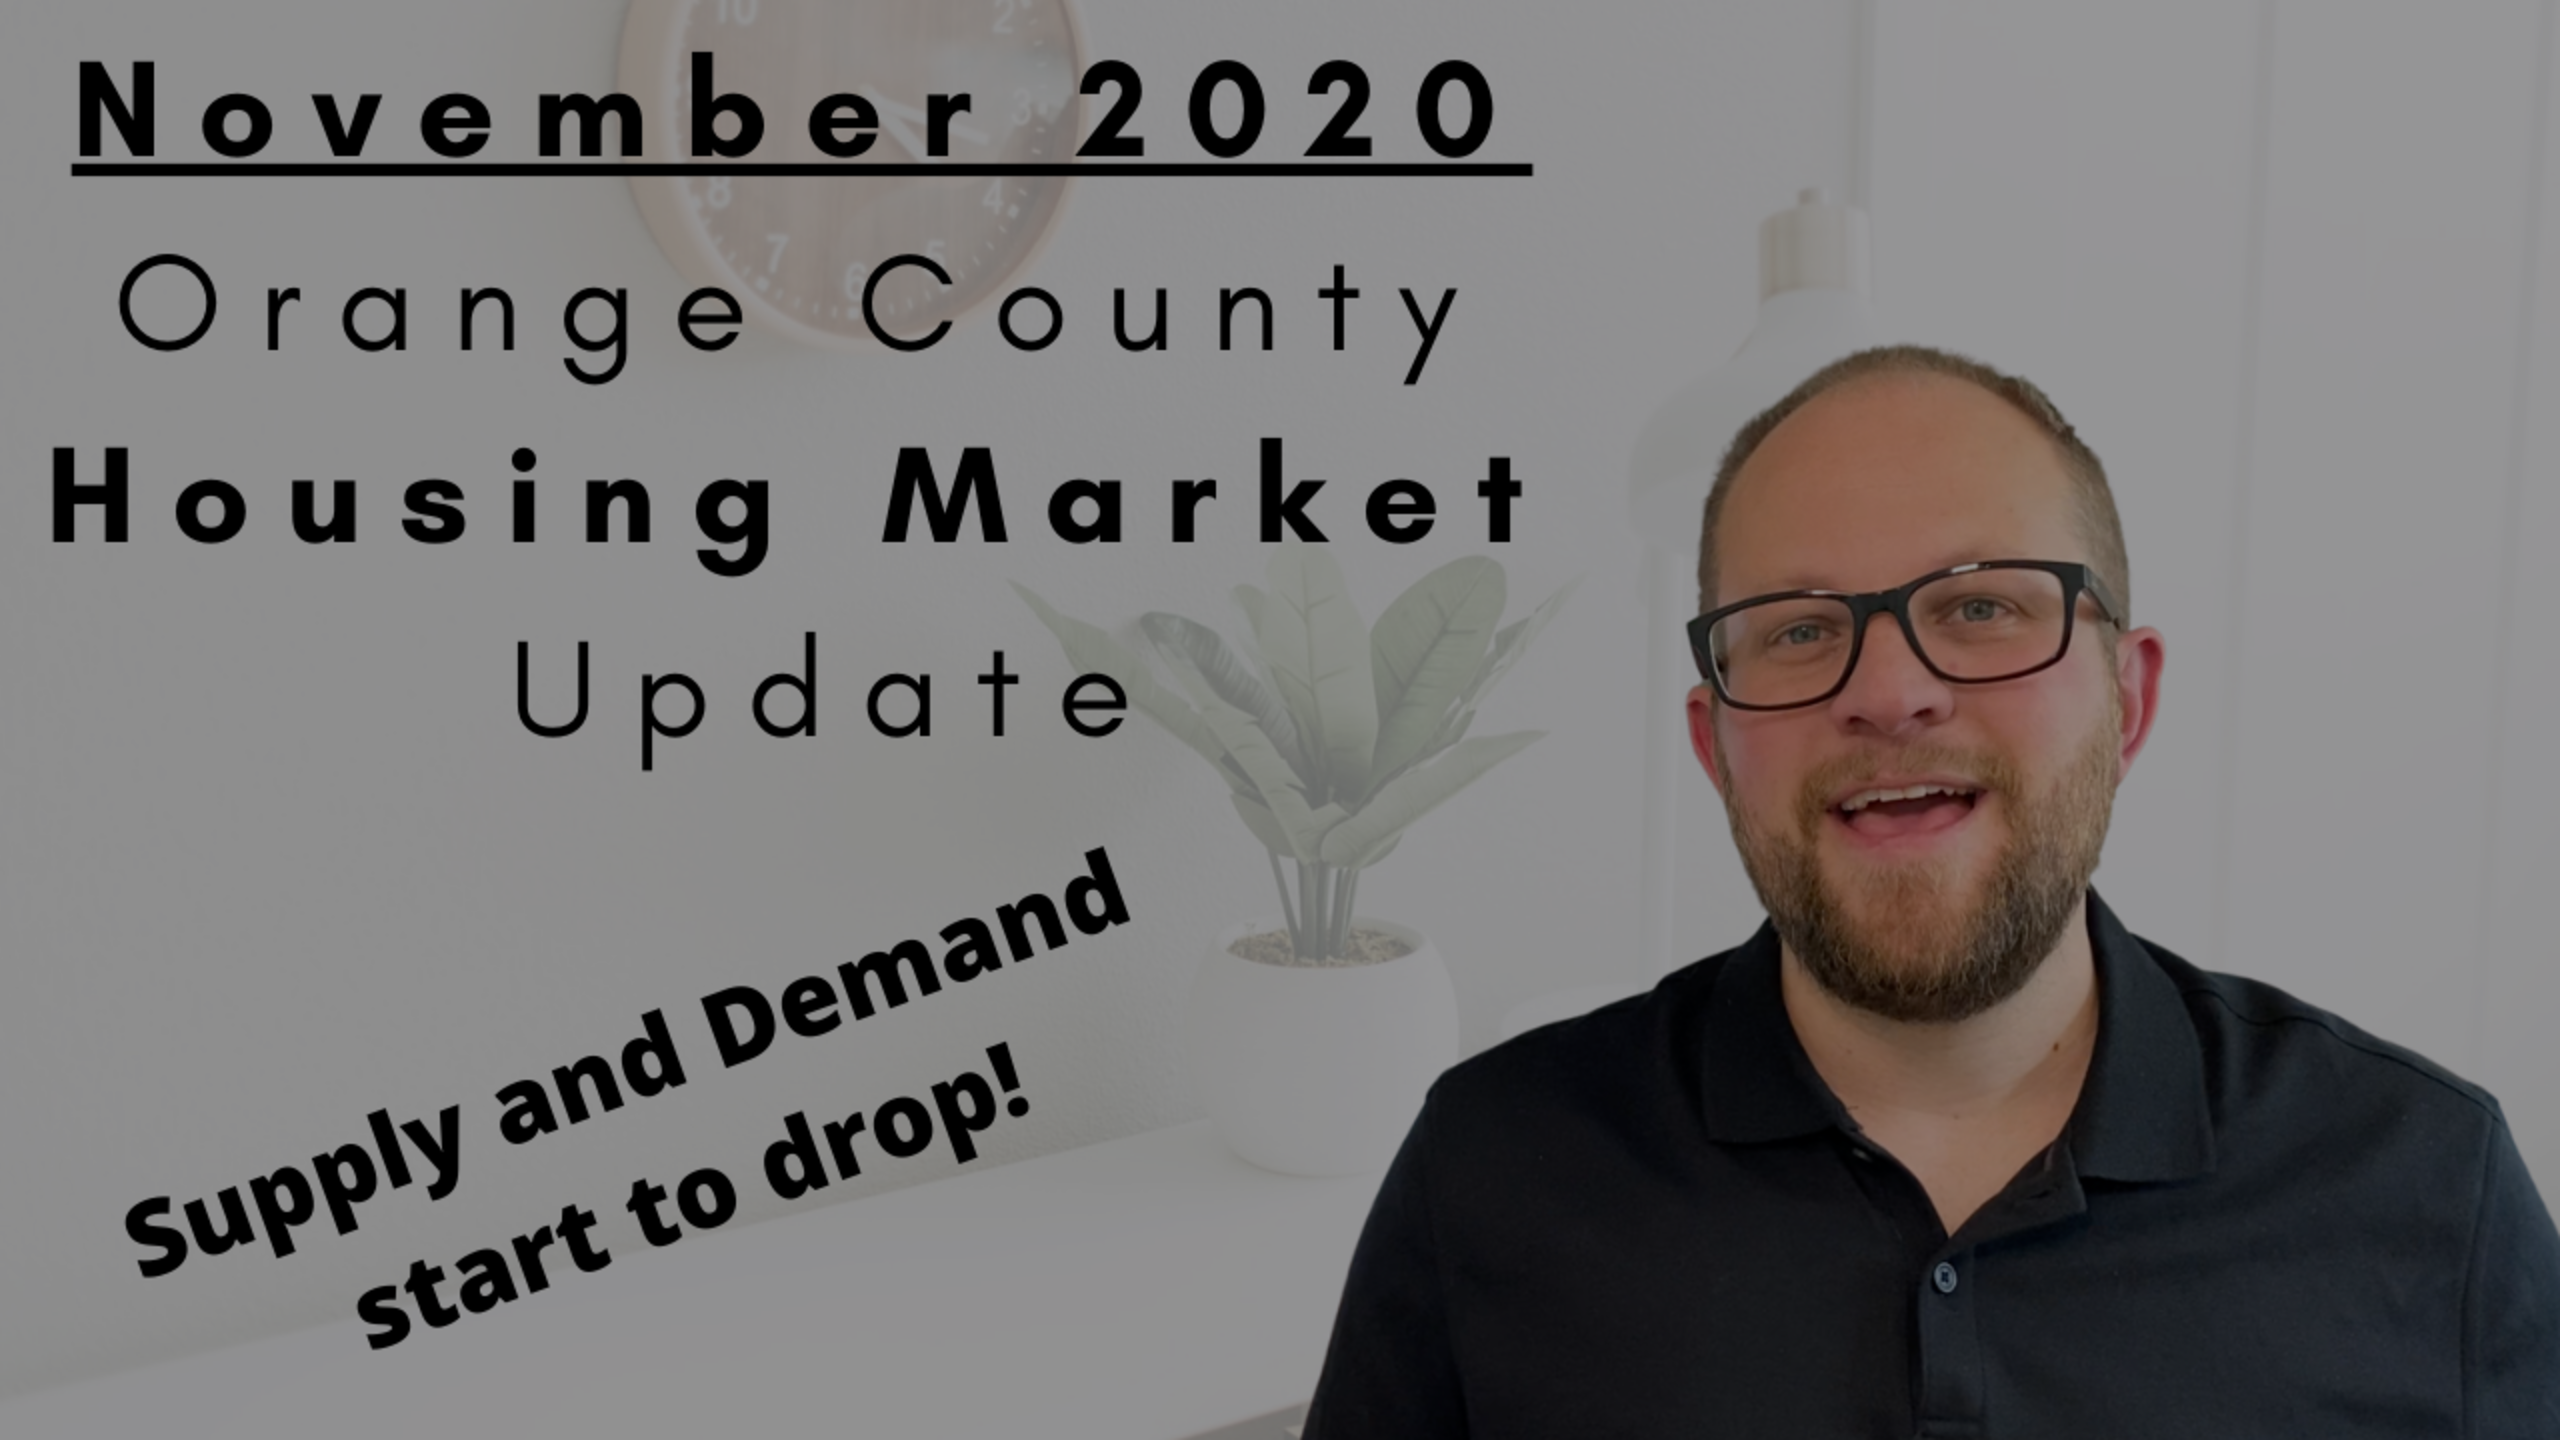 November Orange County Housing Market Update